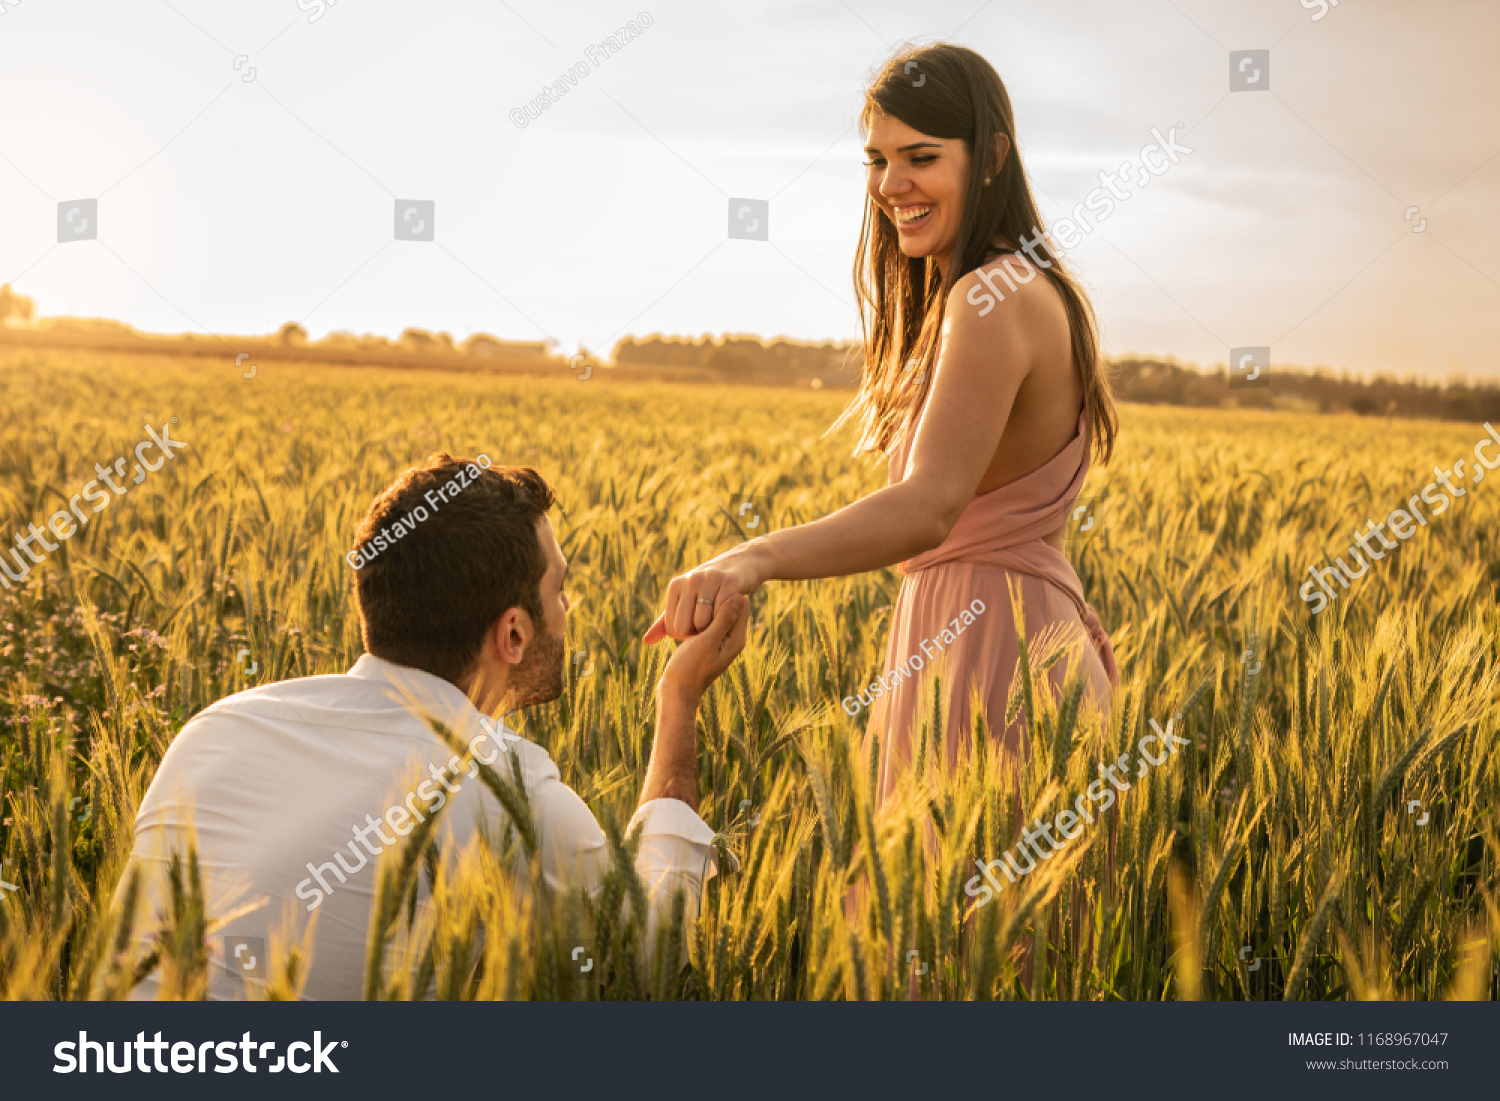 Will you marry me? Men making proposal for his girlfriend at field #1168967047